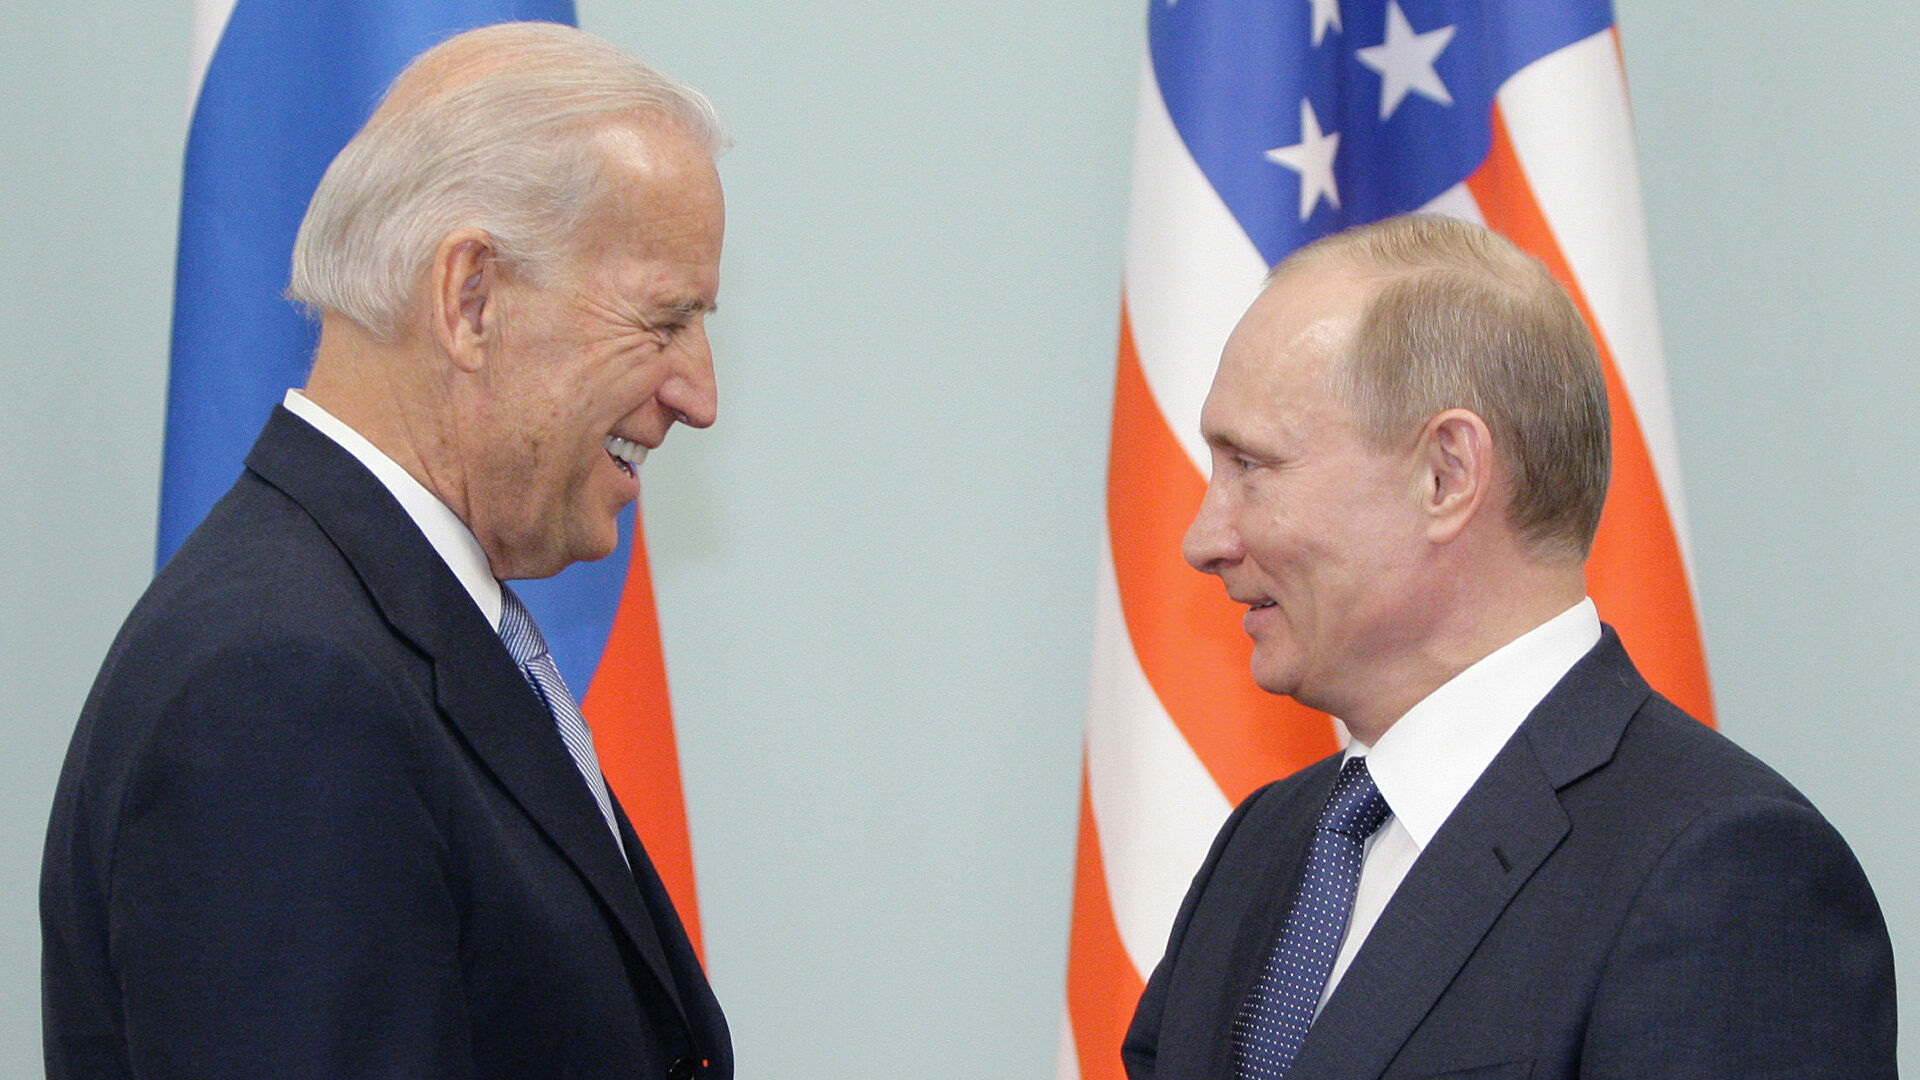 Only 15% of Ukrainians have a positive attitude towards Putin, 73% of the respondents approve of Merkel, with 64% approving of Biden